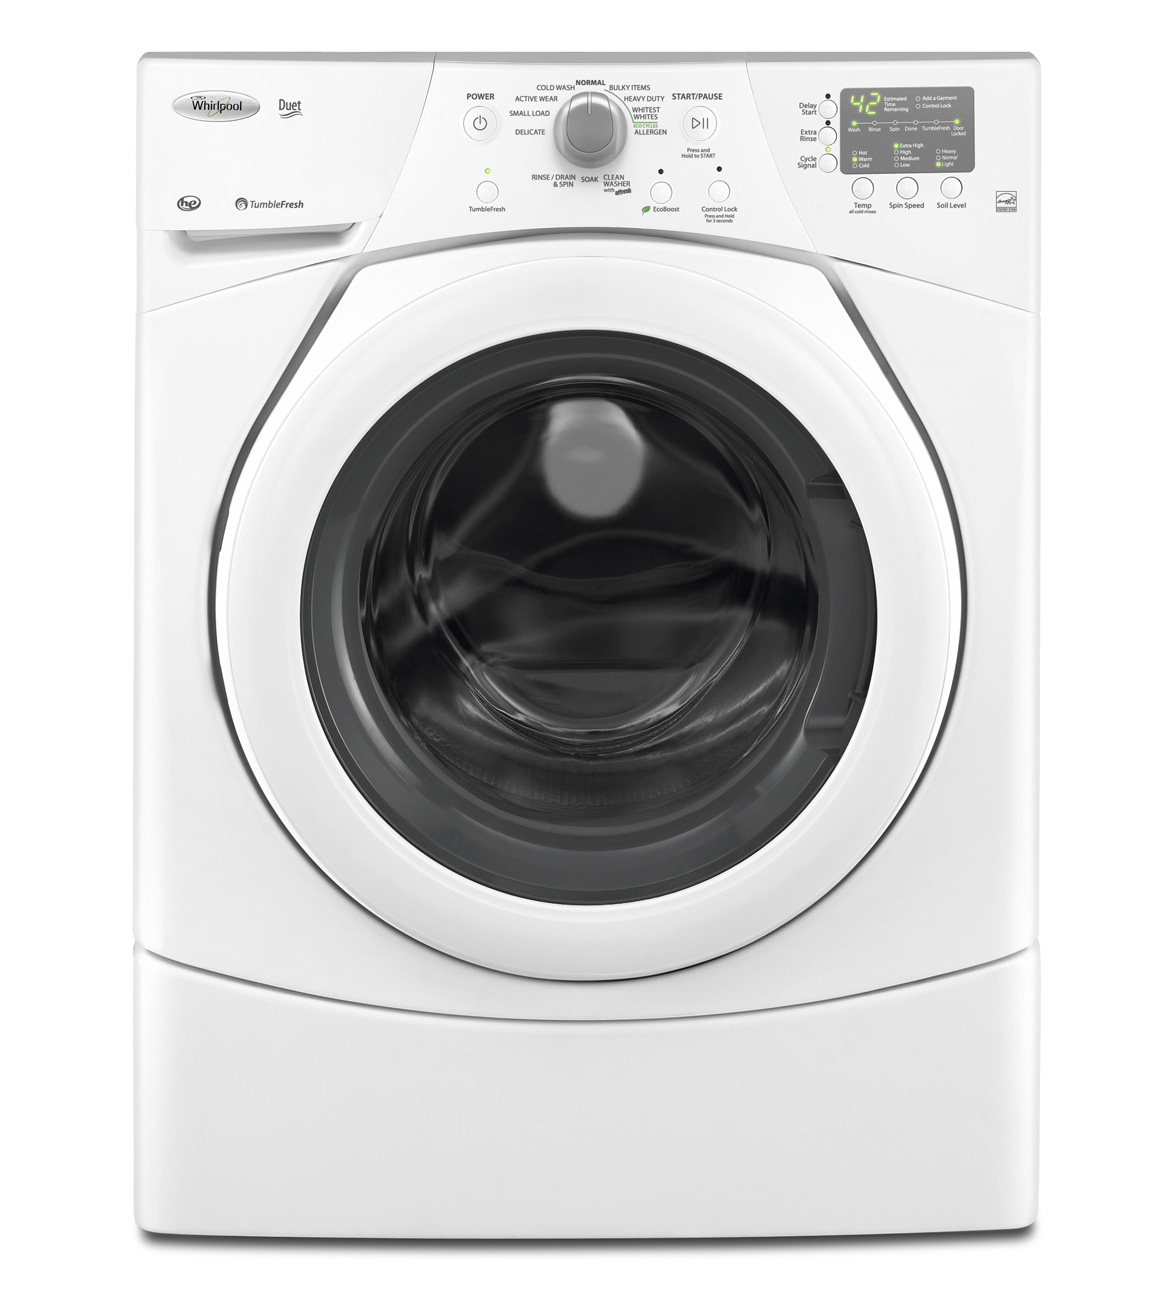 Review of Whirlpool Duet 3.5 cu. ft. High-Efficiency Front L ...